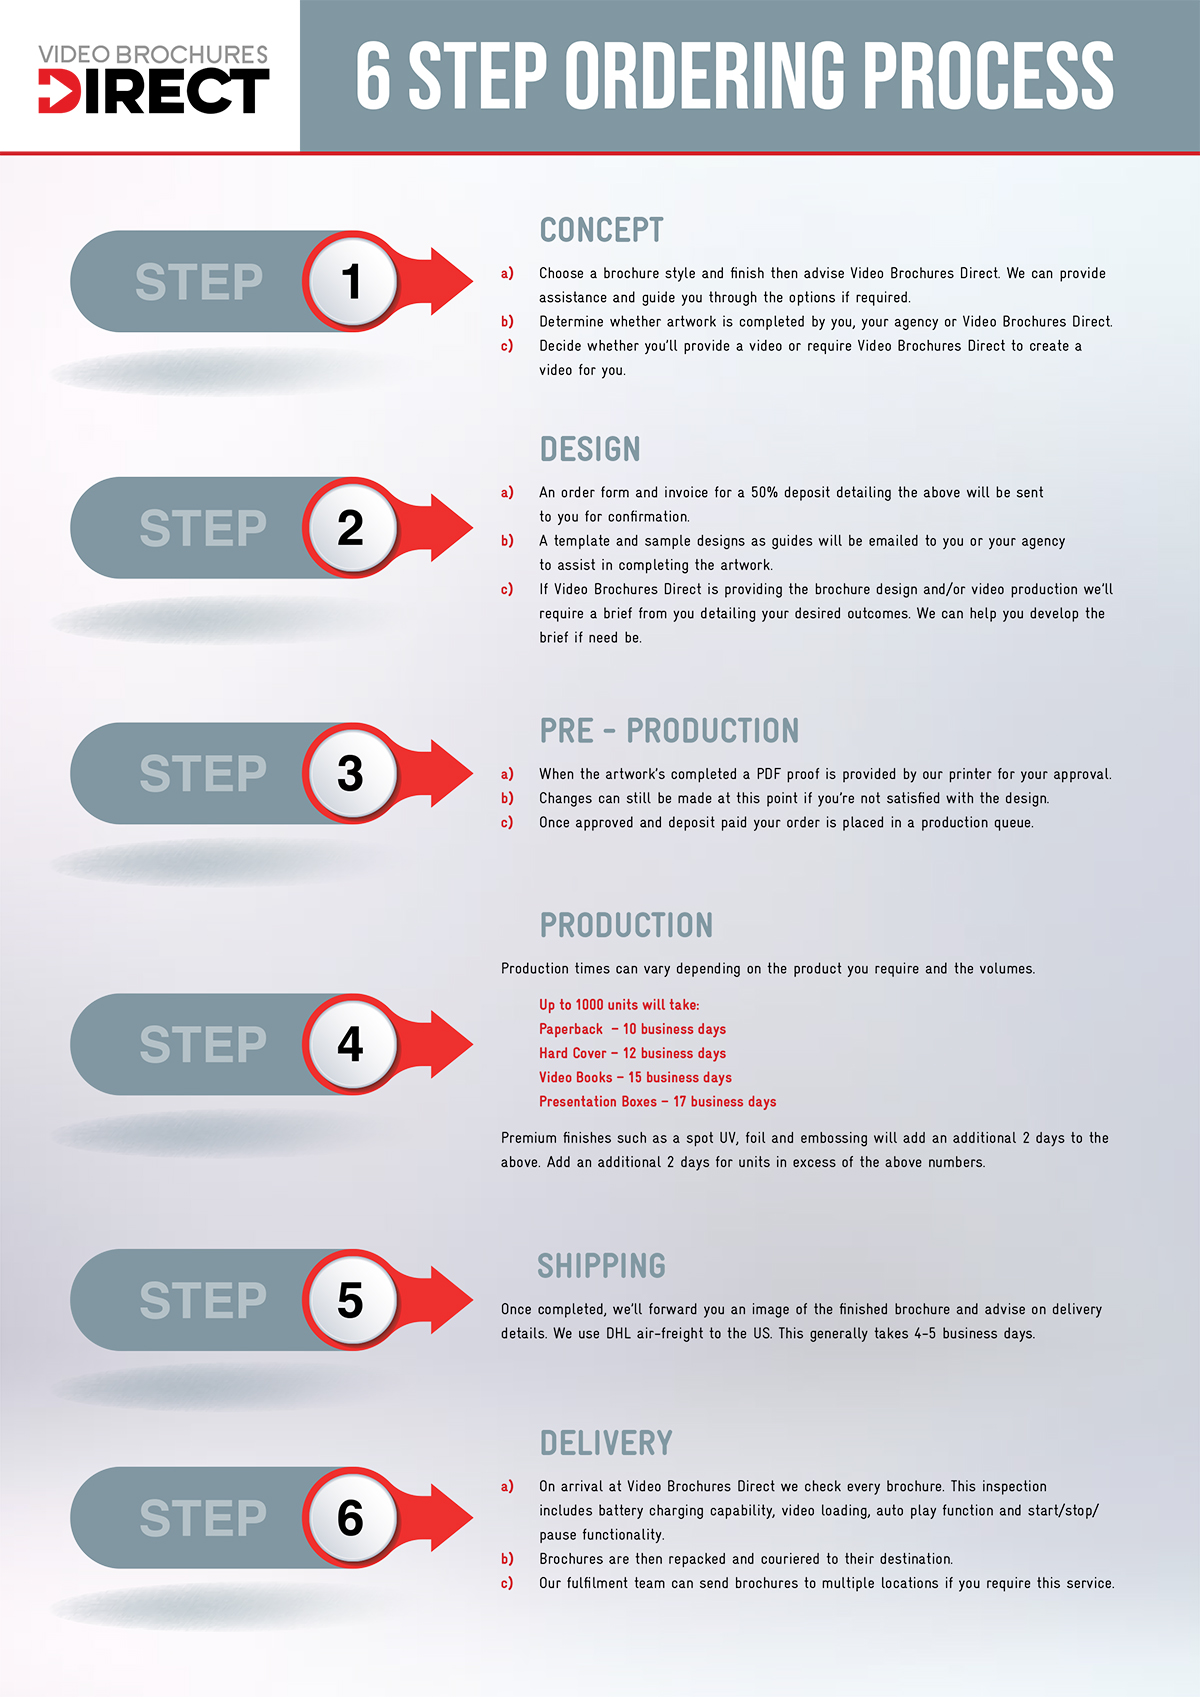 VBD 6 steps to a great video brochure